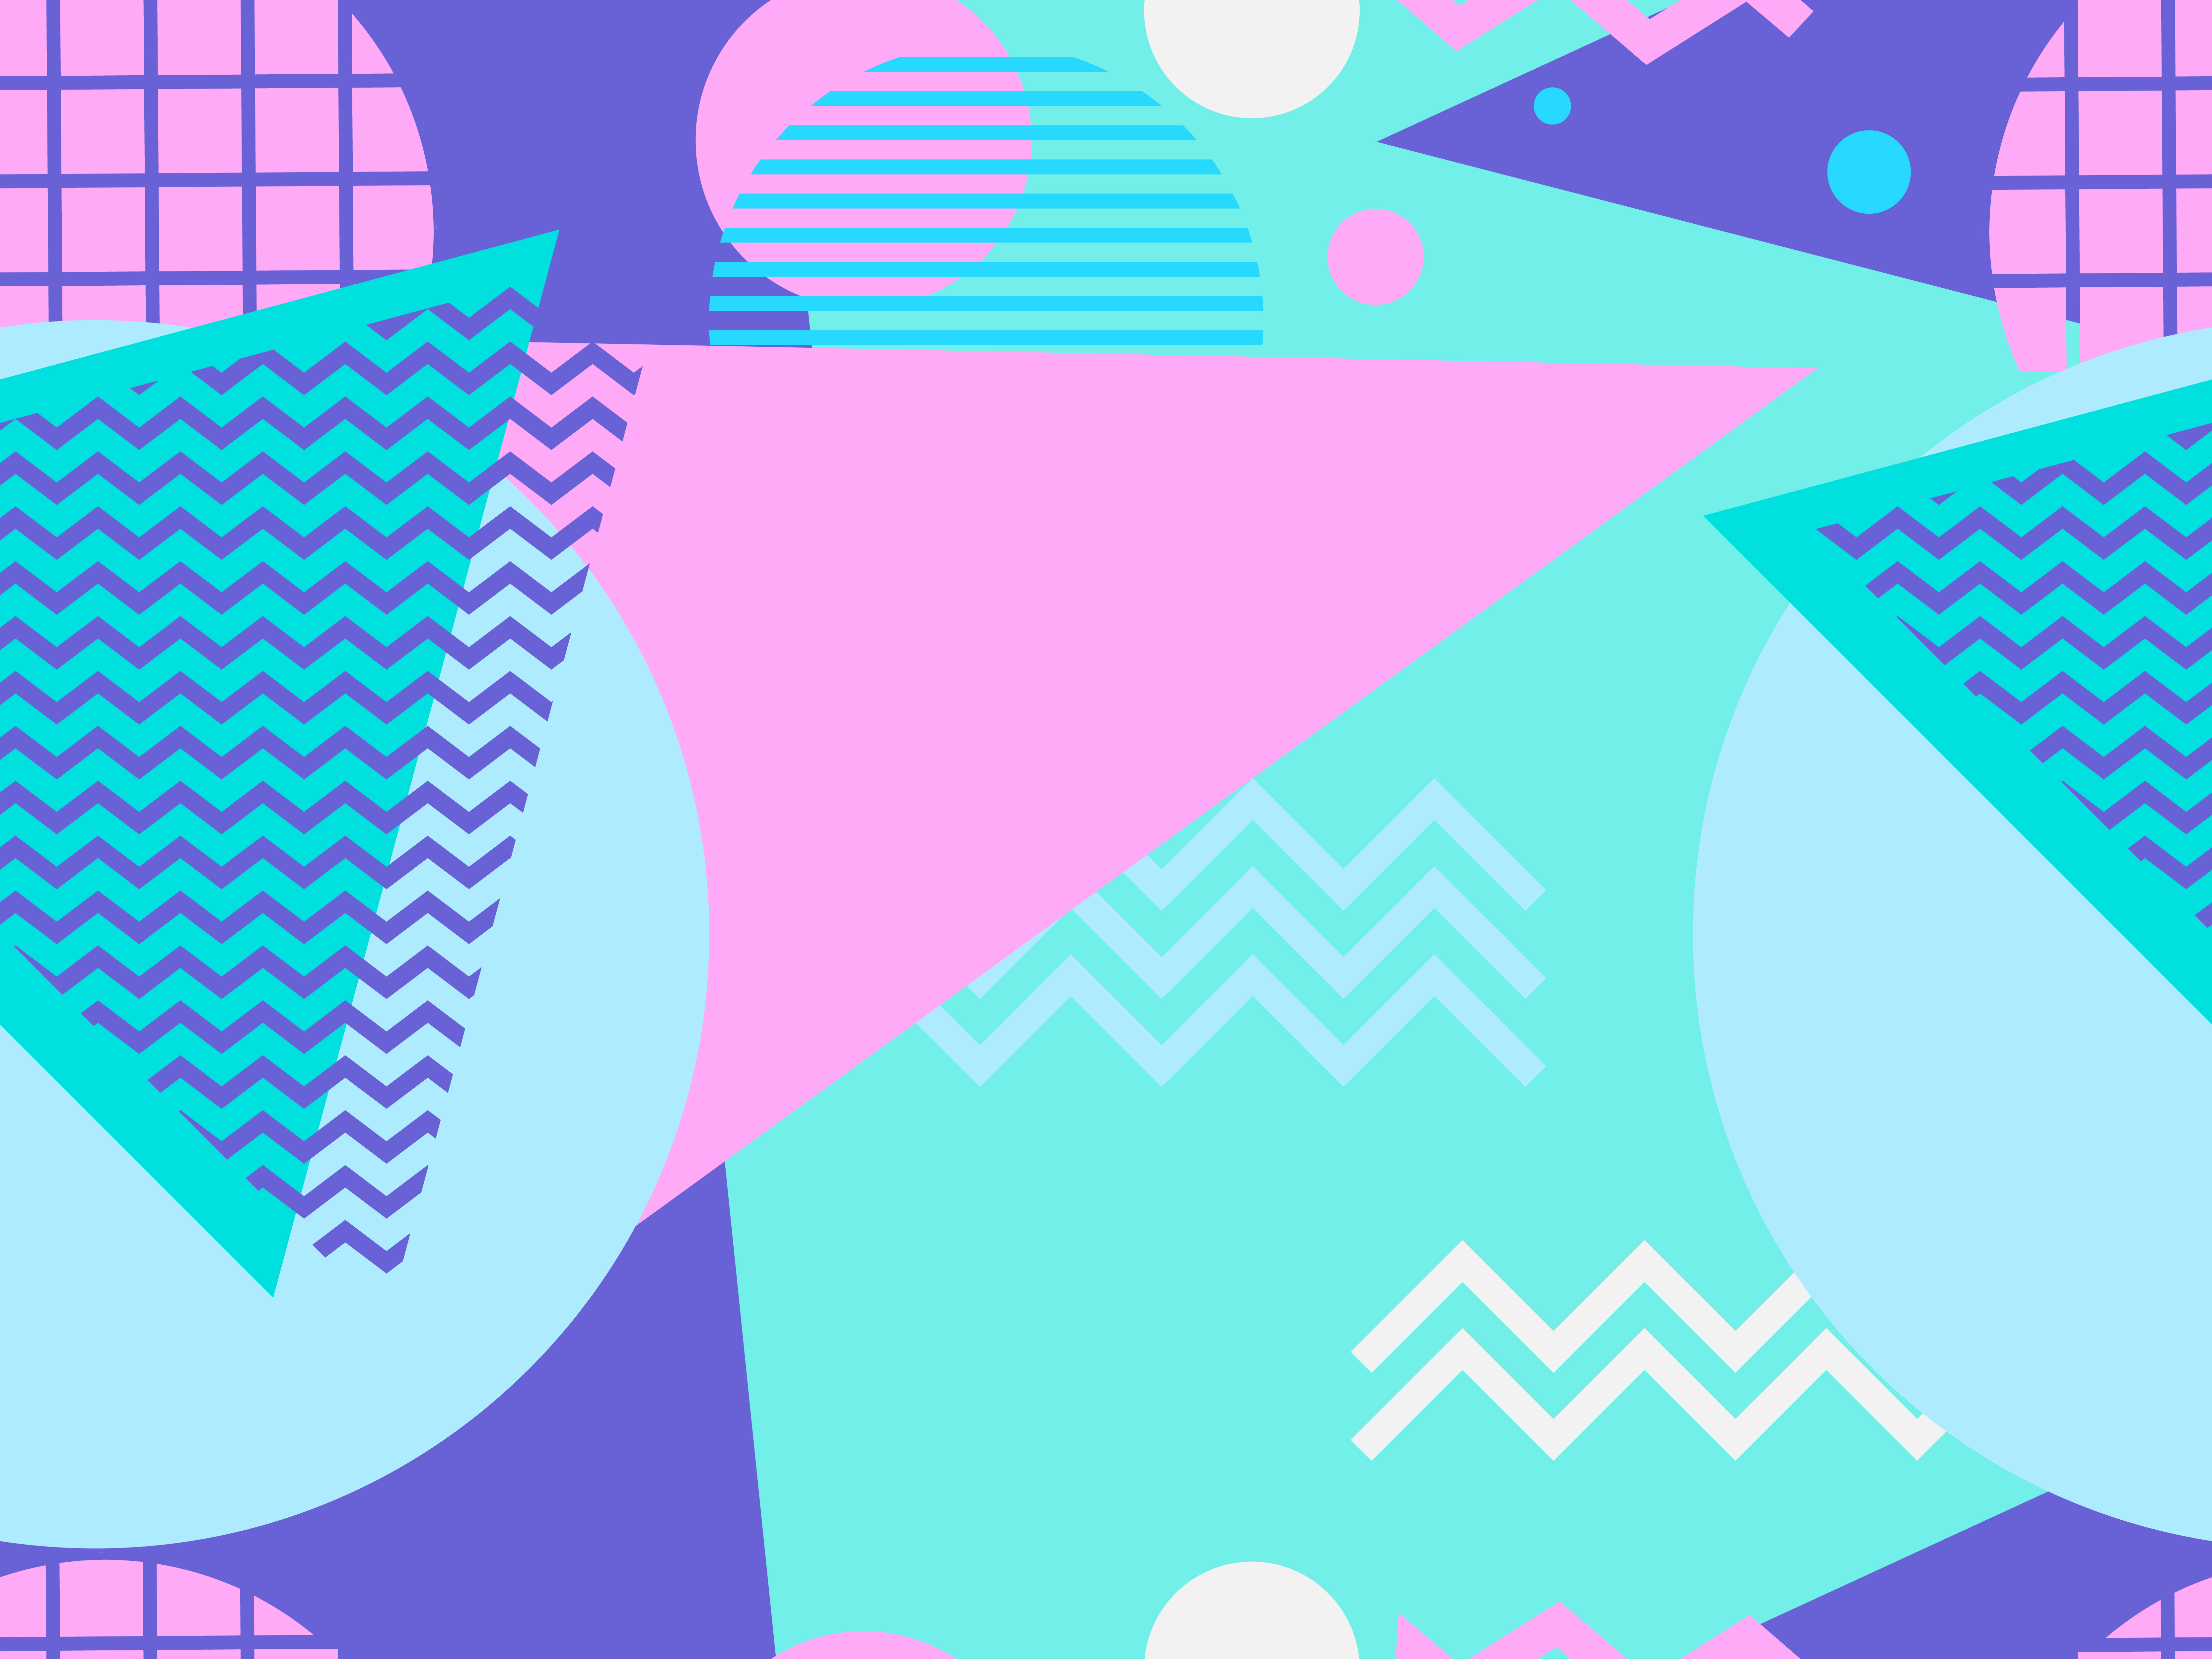 Geometric seamless pattern in style of the 80s. Vector illustration